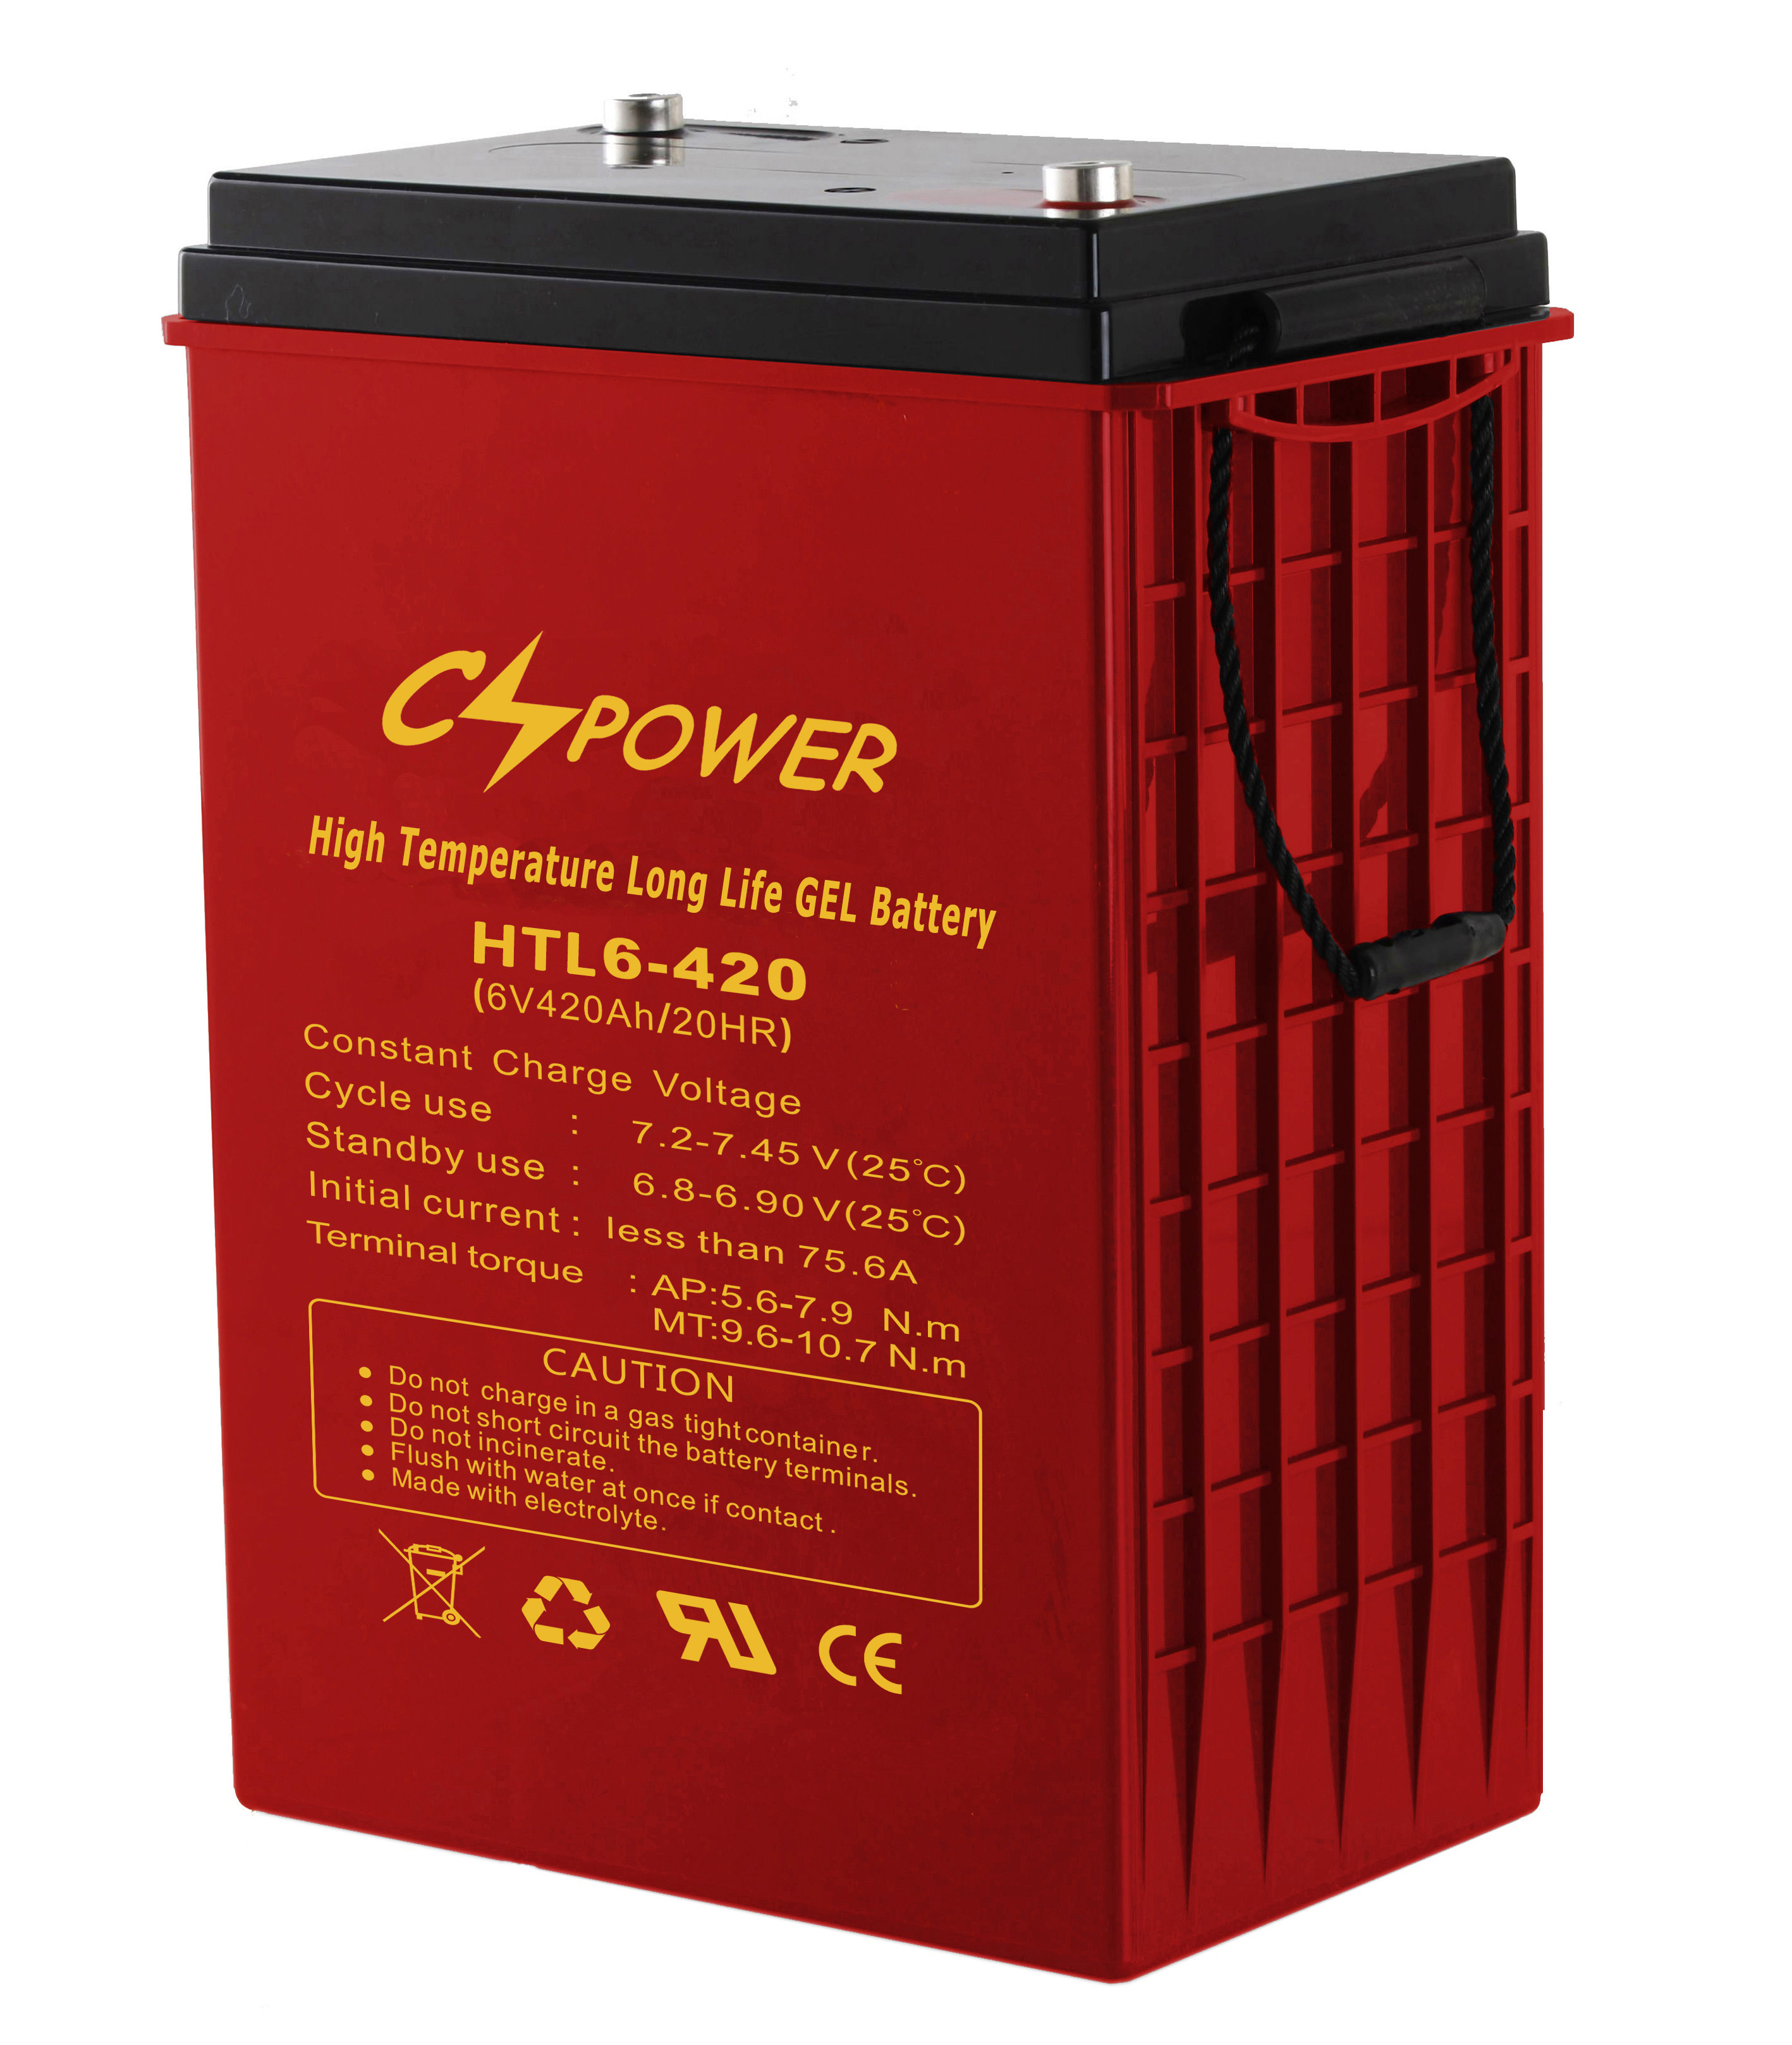 Cspower Anti High Temperature Long Life Gel Battery 6V 420ah